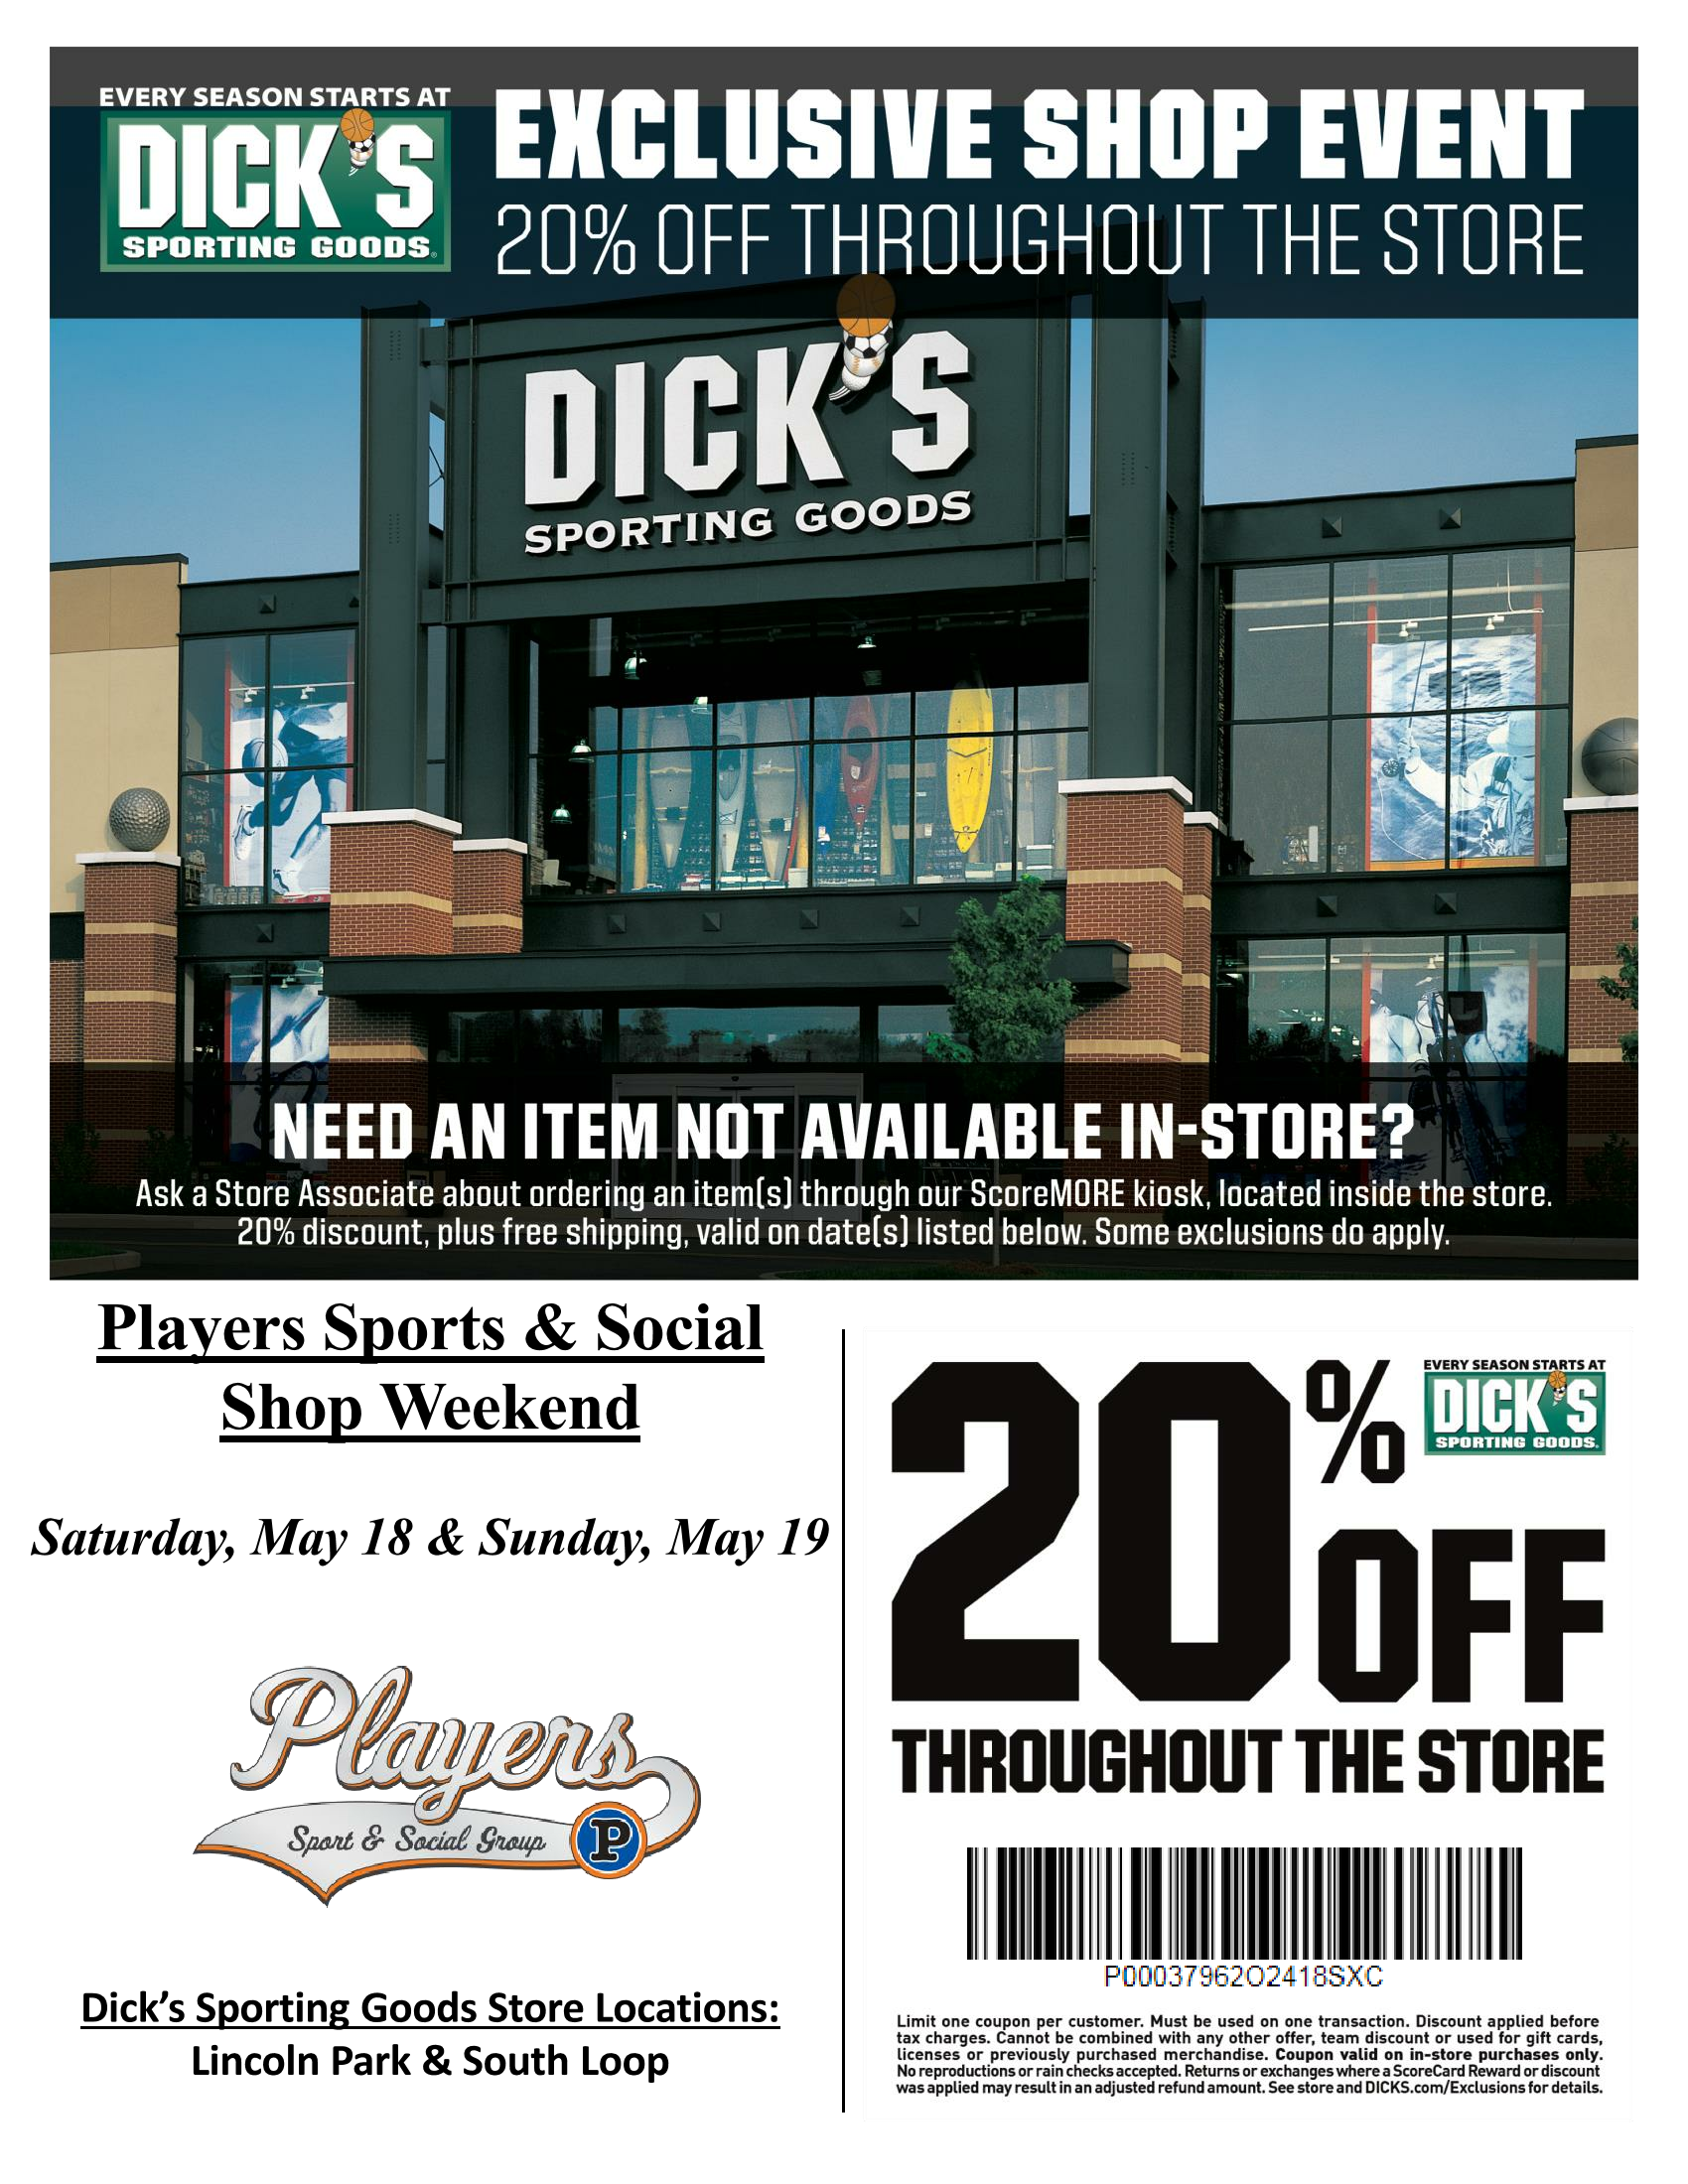 23cd3d9de7a Dick's Sporting Goods Exclusive Shop Event. Sat 5/18/19 thru Sun 5/19/19 -  20% Off @ Lincoln Park & South Loop locations!